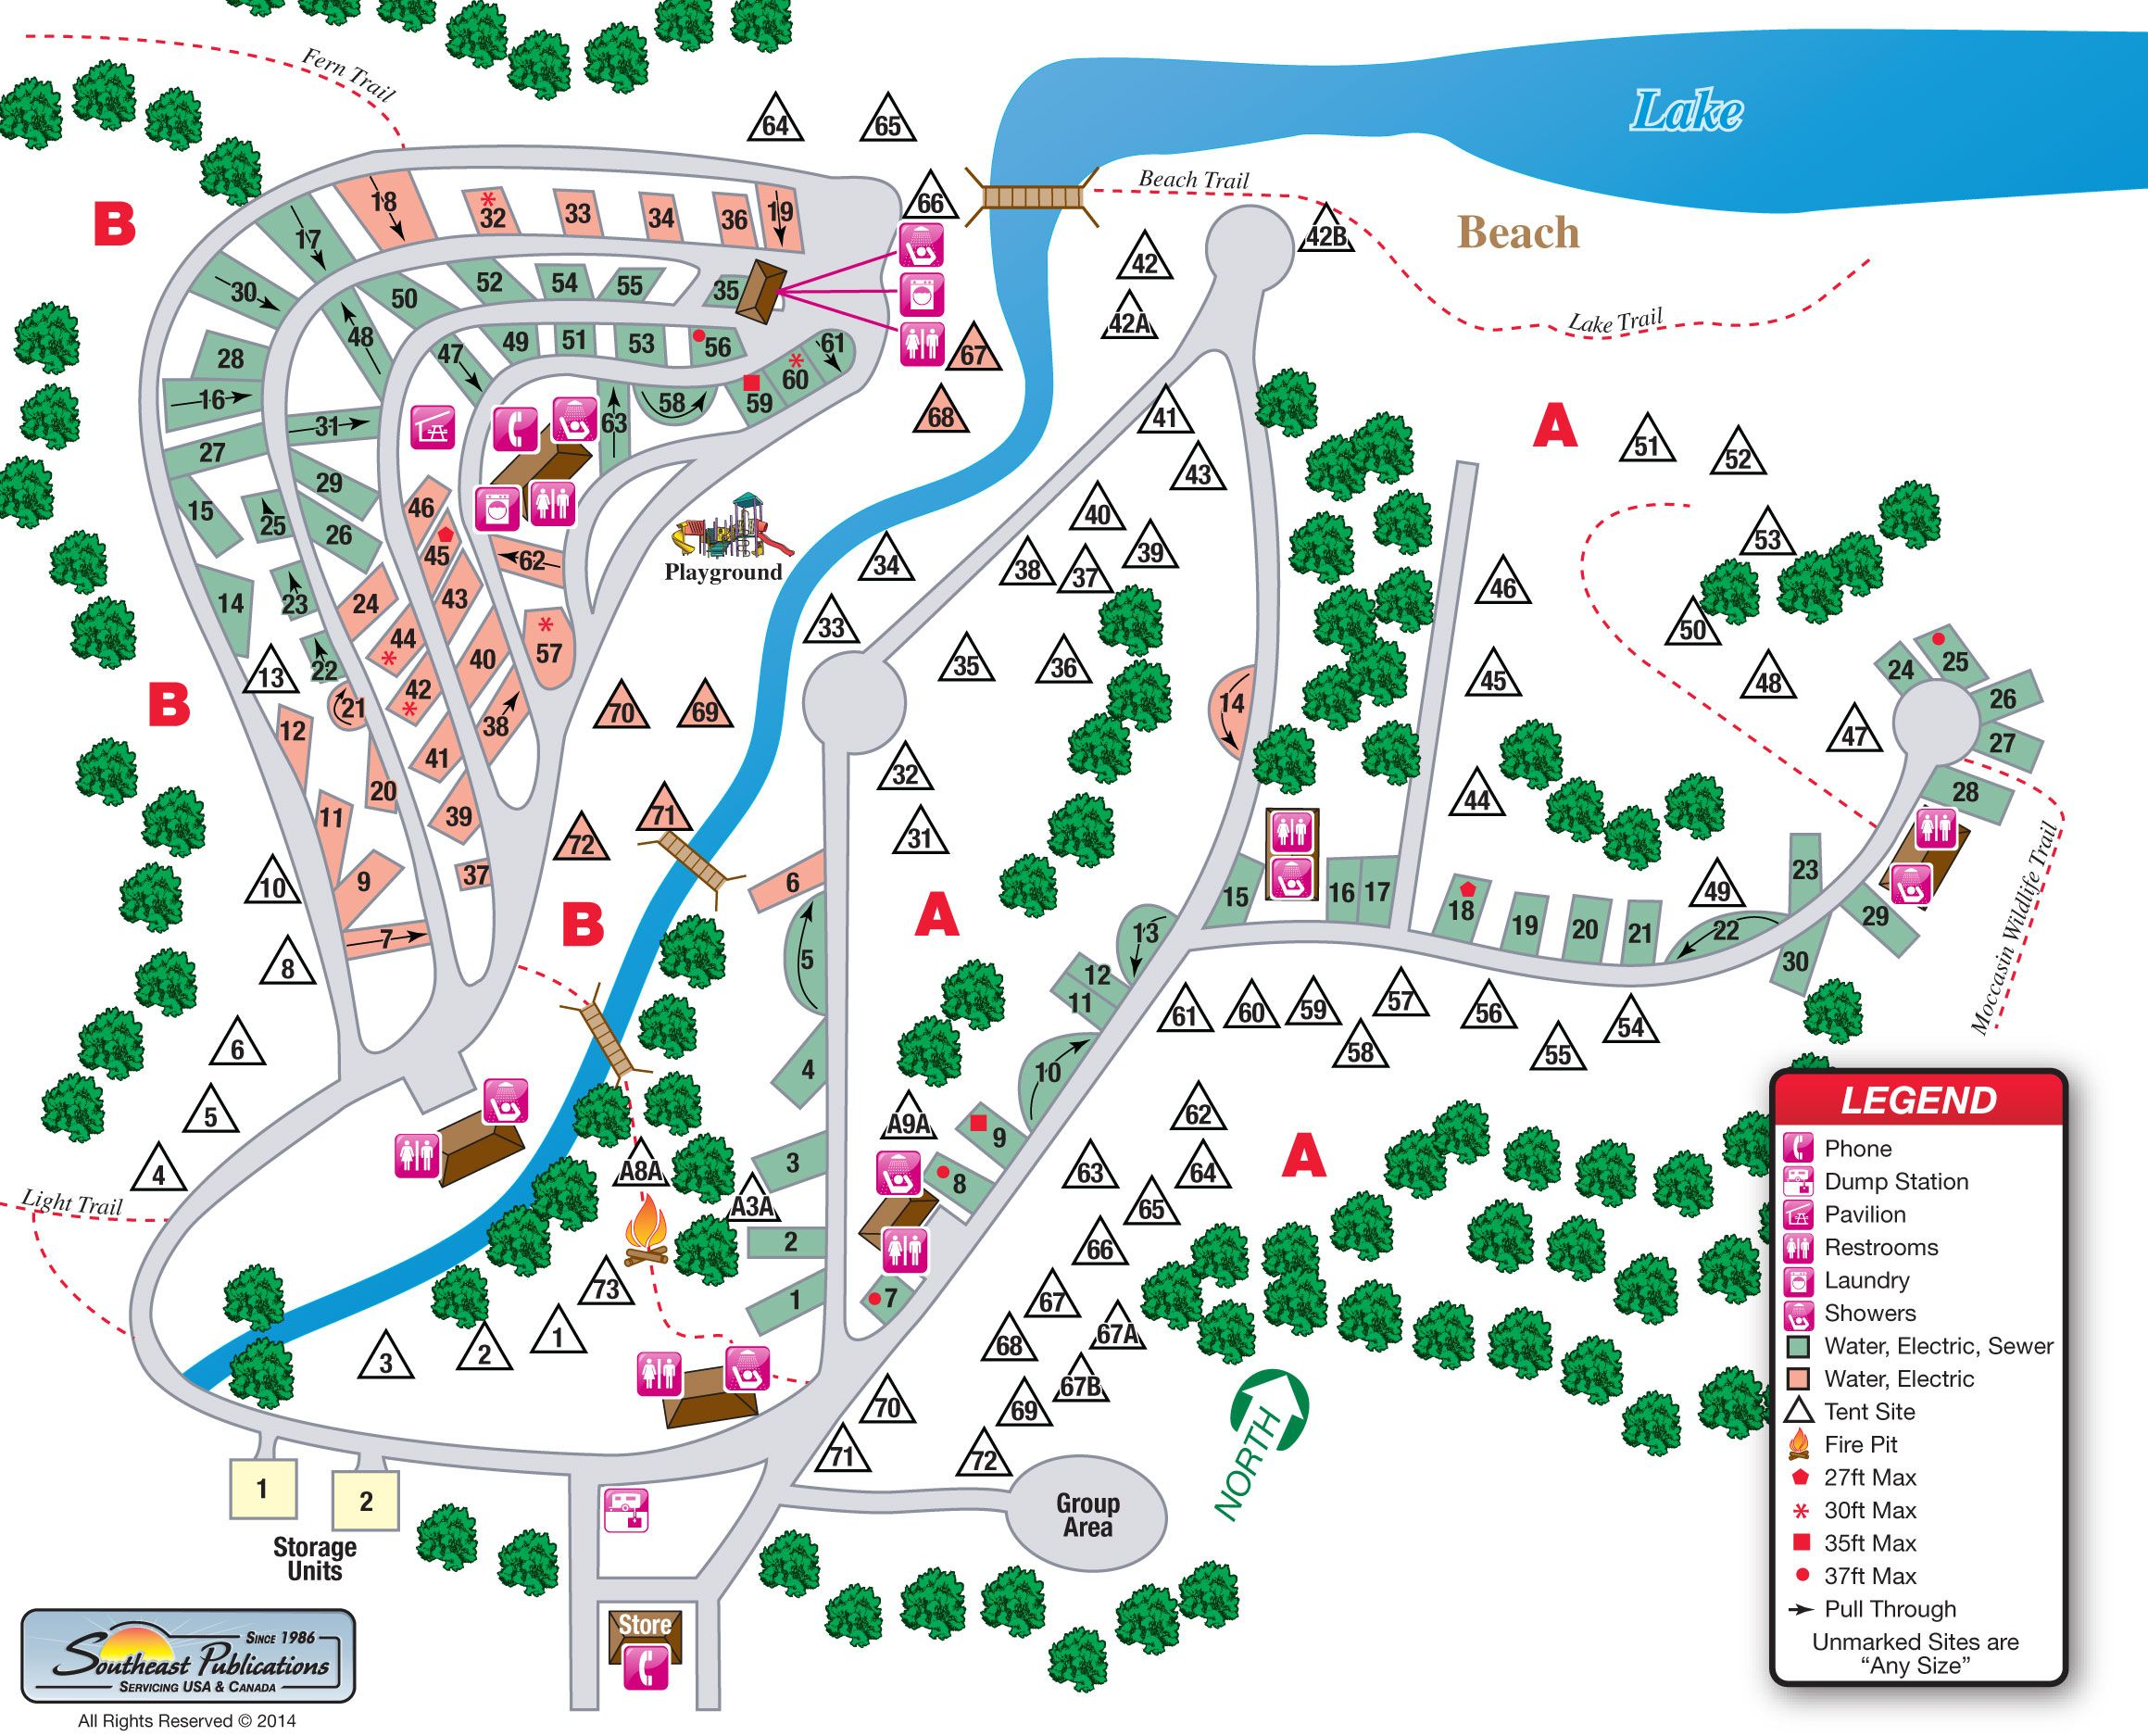 oak mountain state park campground map Google Search